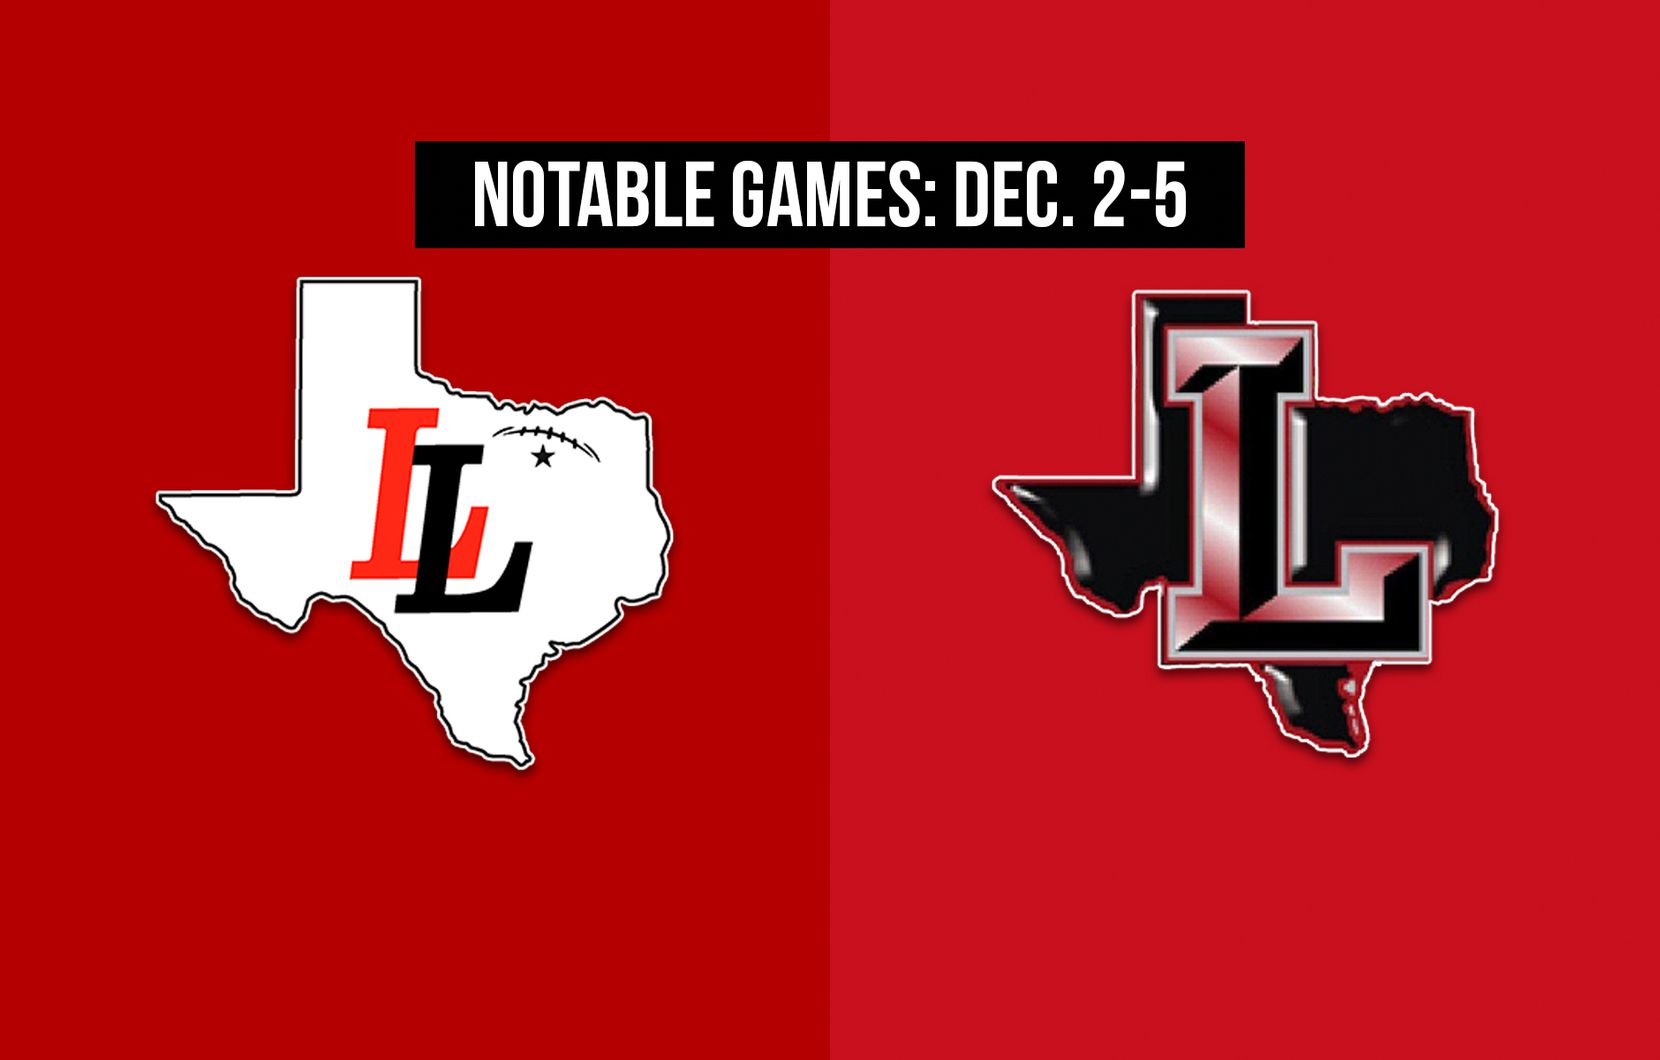 Notable games for the week of Dec. 2-5 of the 2020 season: Lovejoy vs. Frisco Liberty.